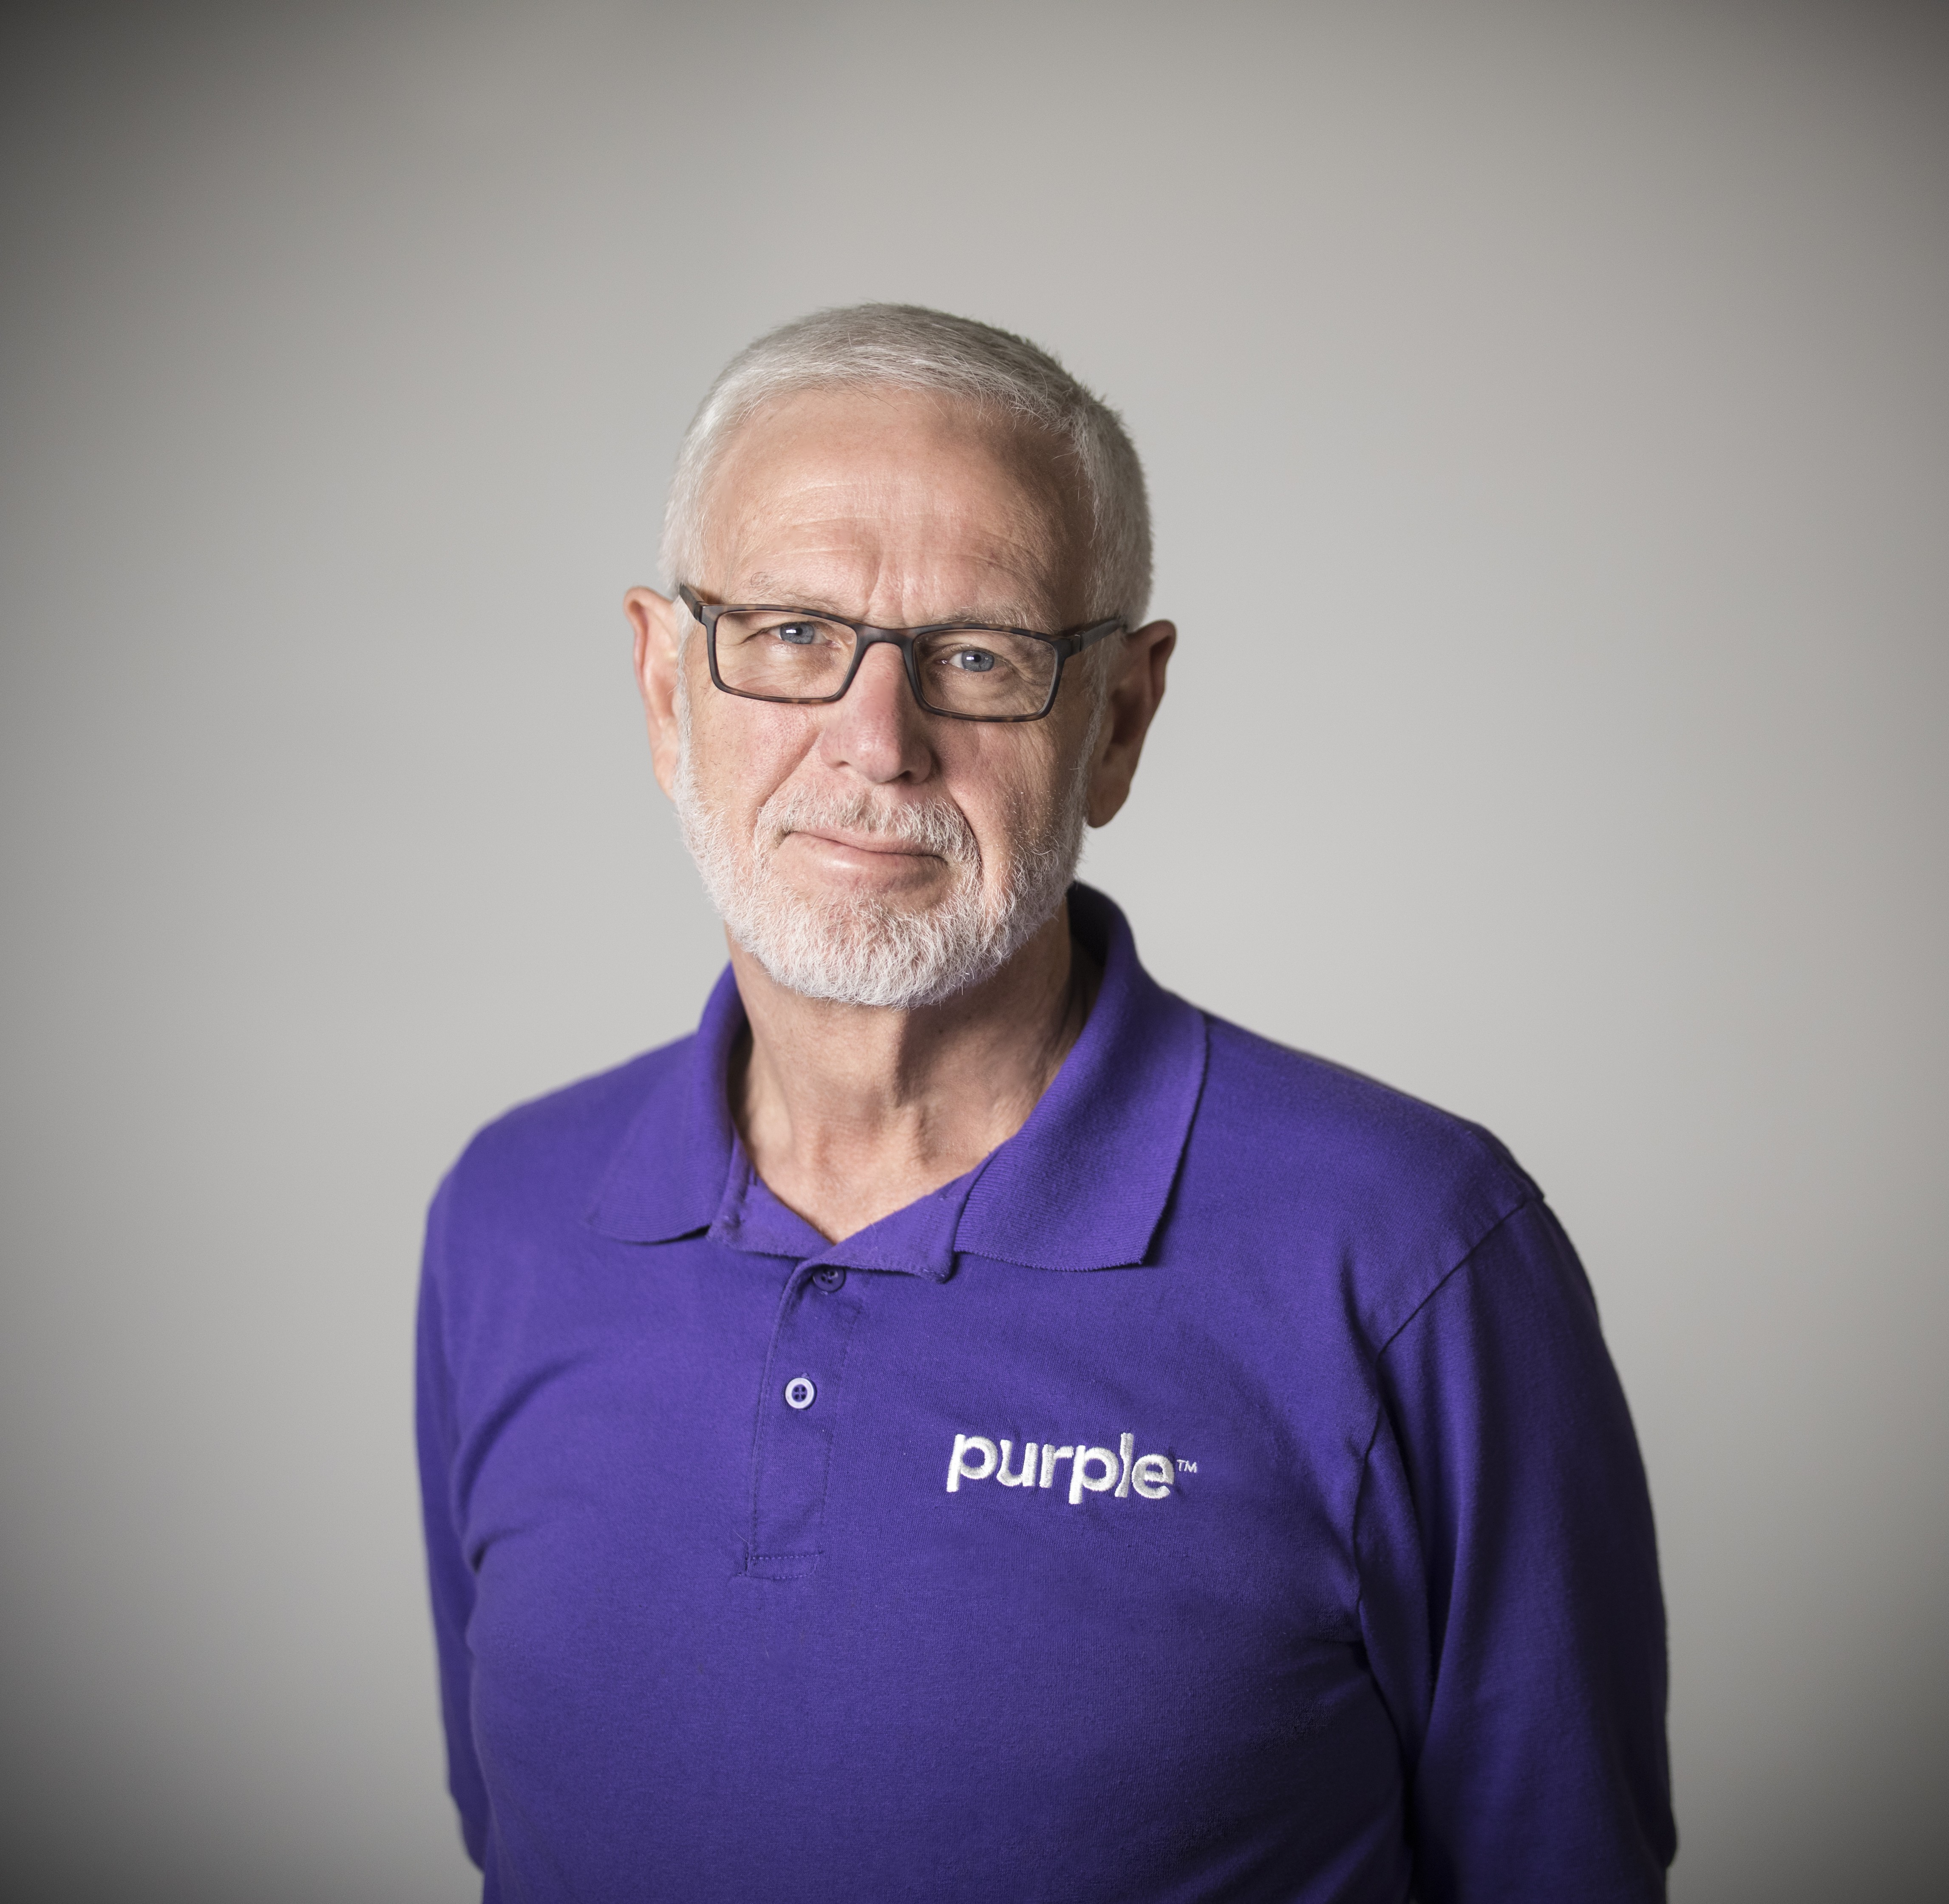 Headshot of Terry Pearce, co-founder of Purple